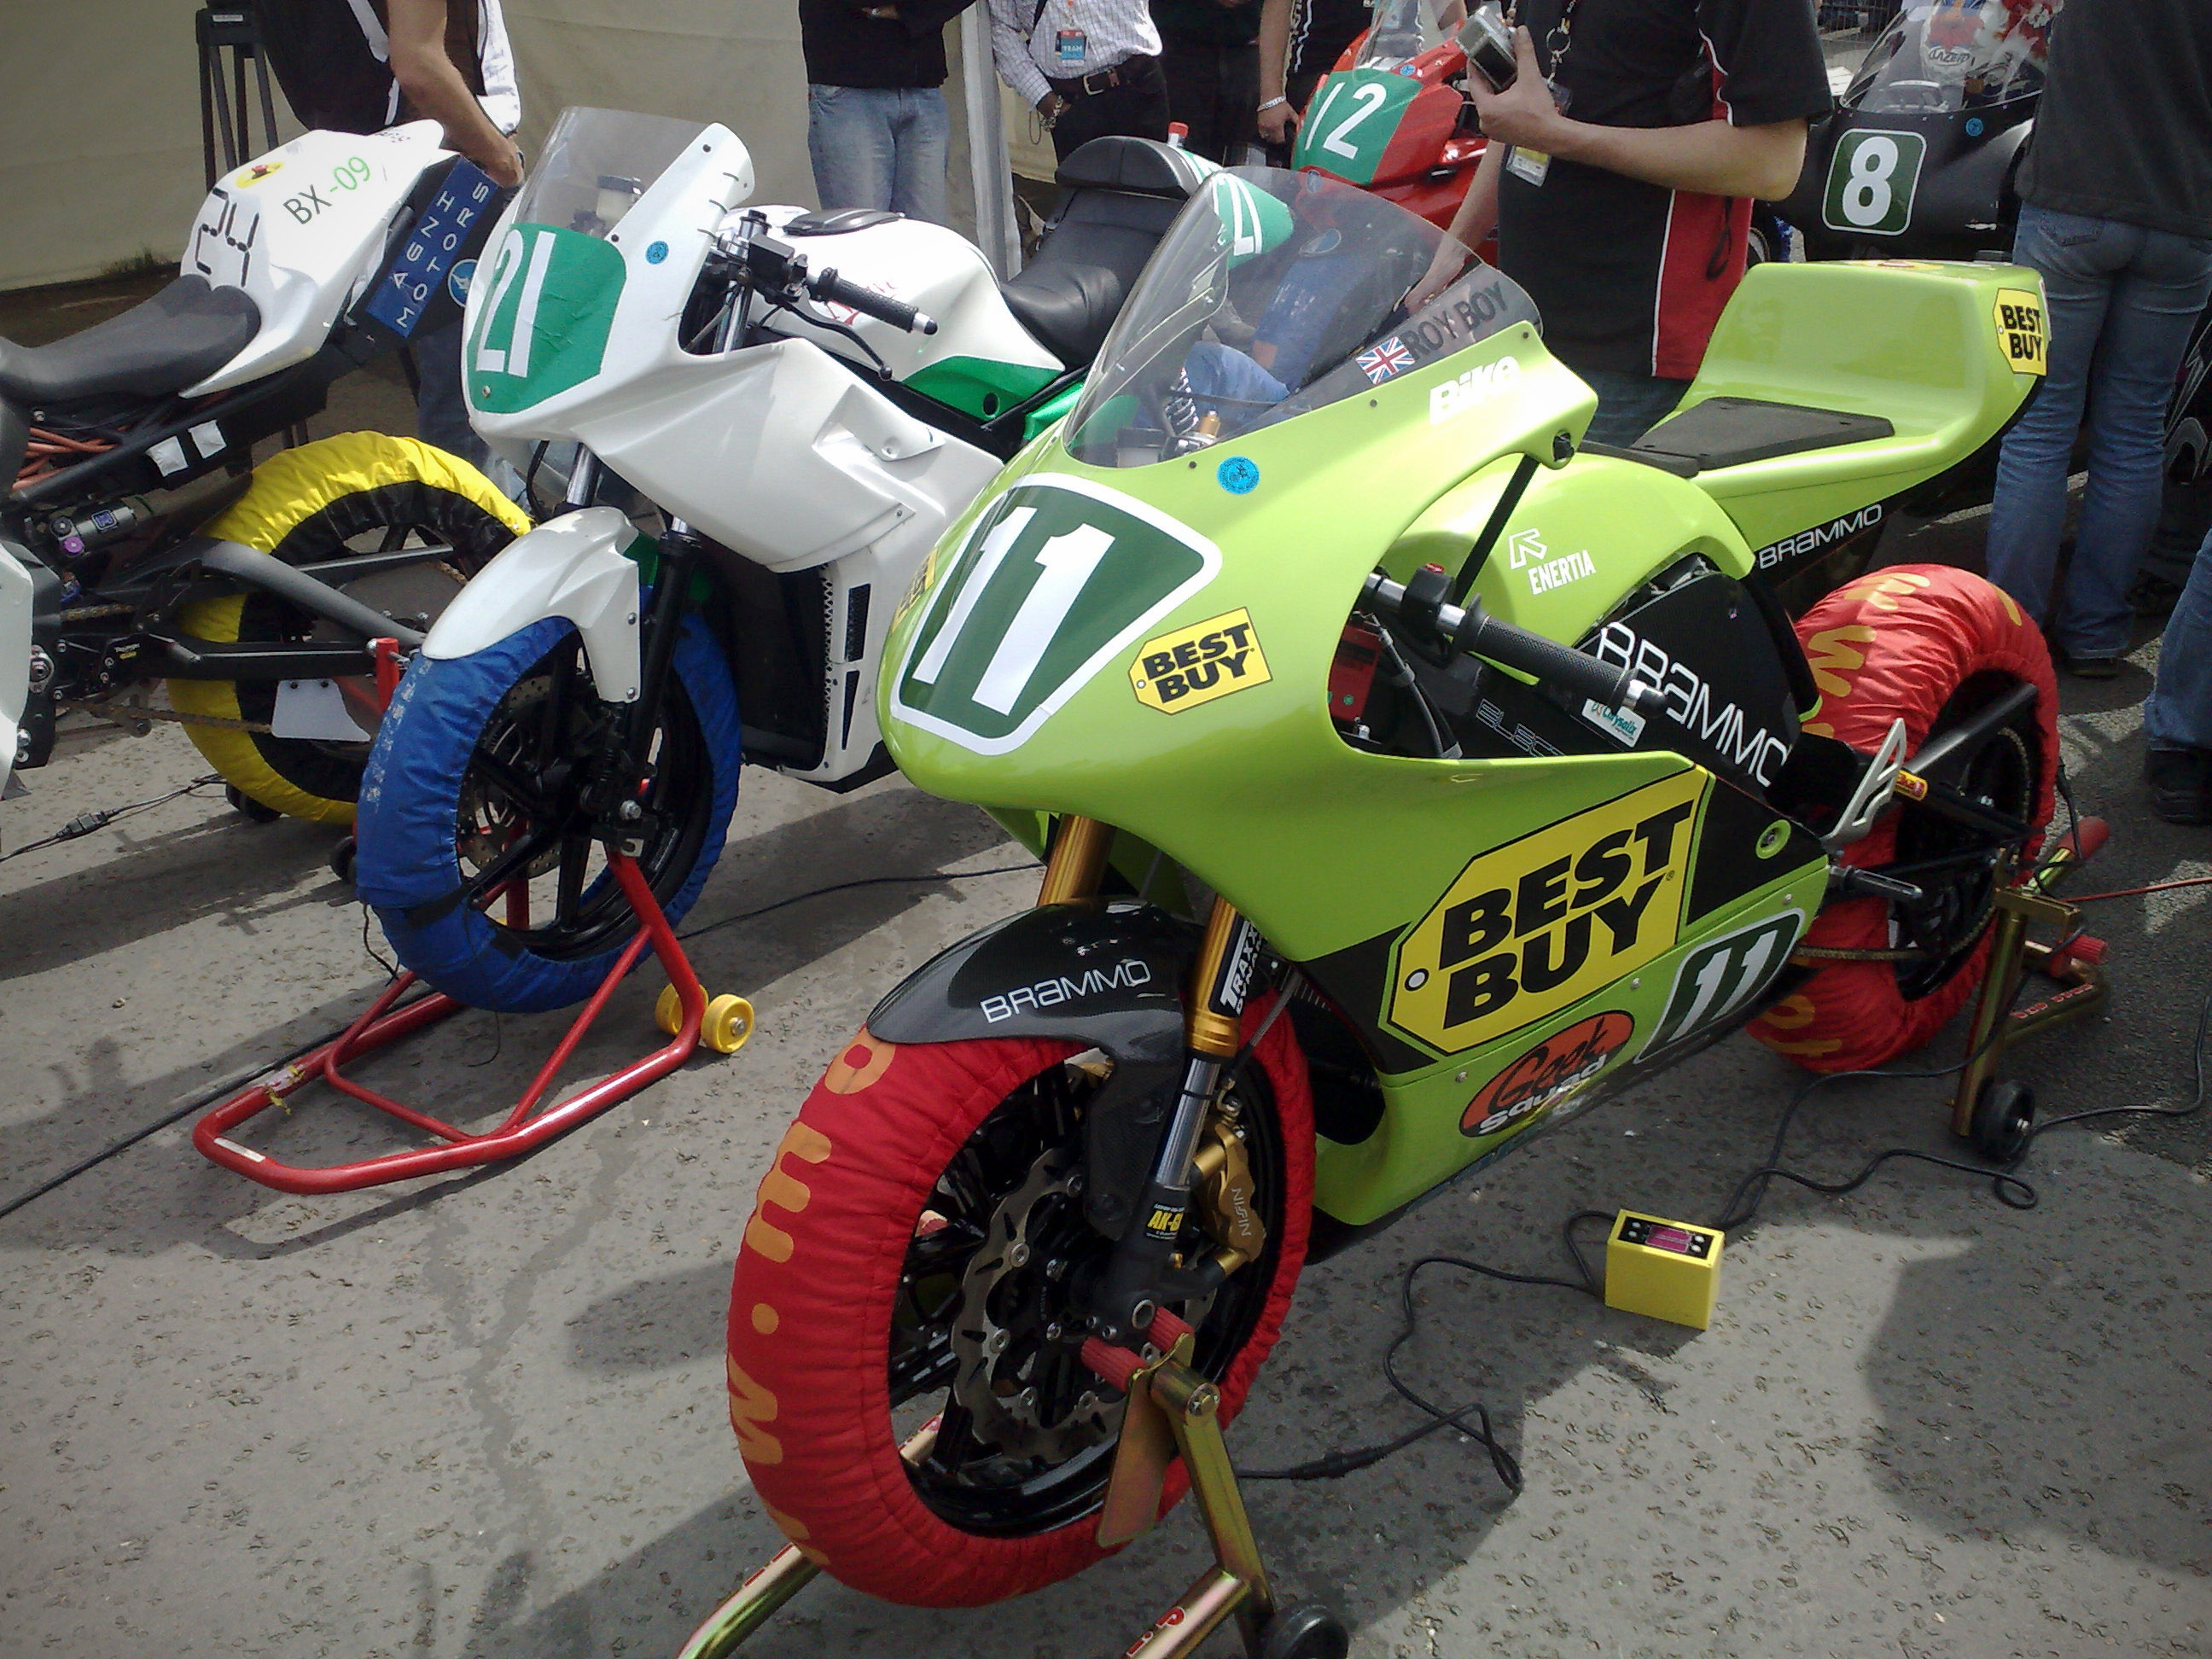 Bike History Report No Cost TTXGP bikes at Isle of Man TT